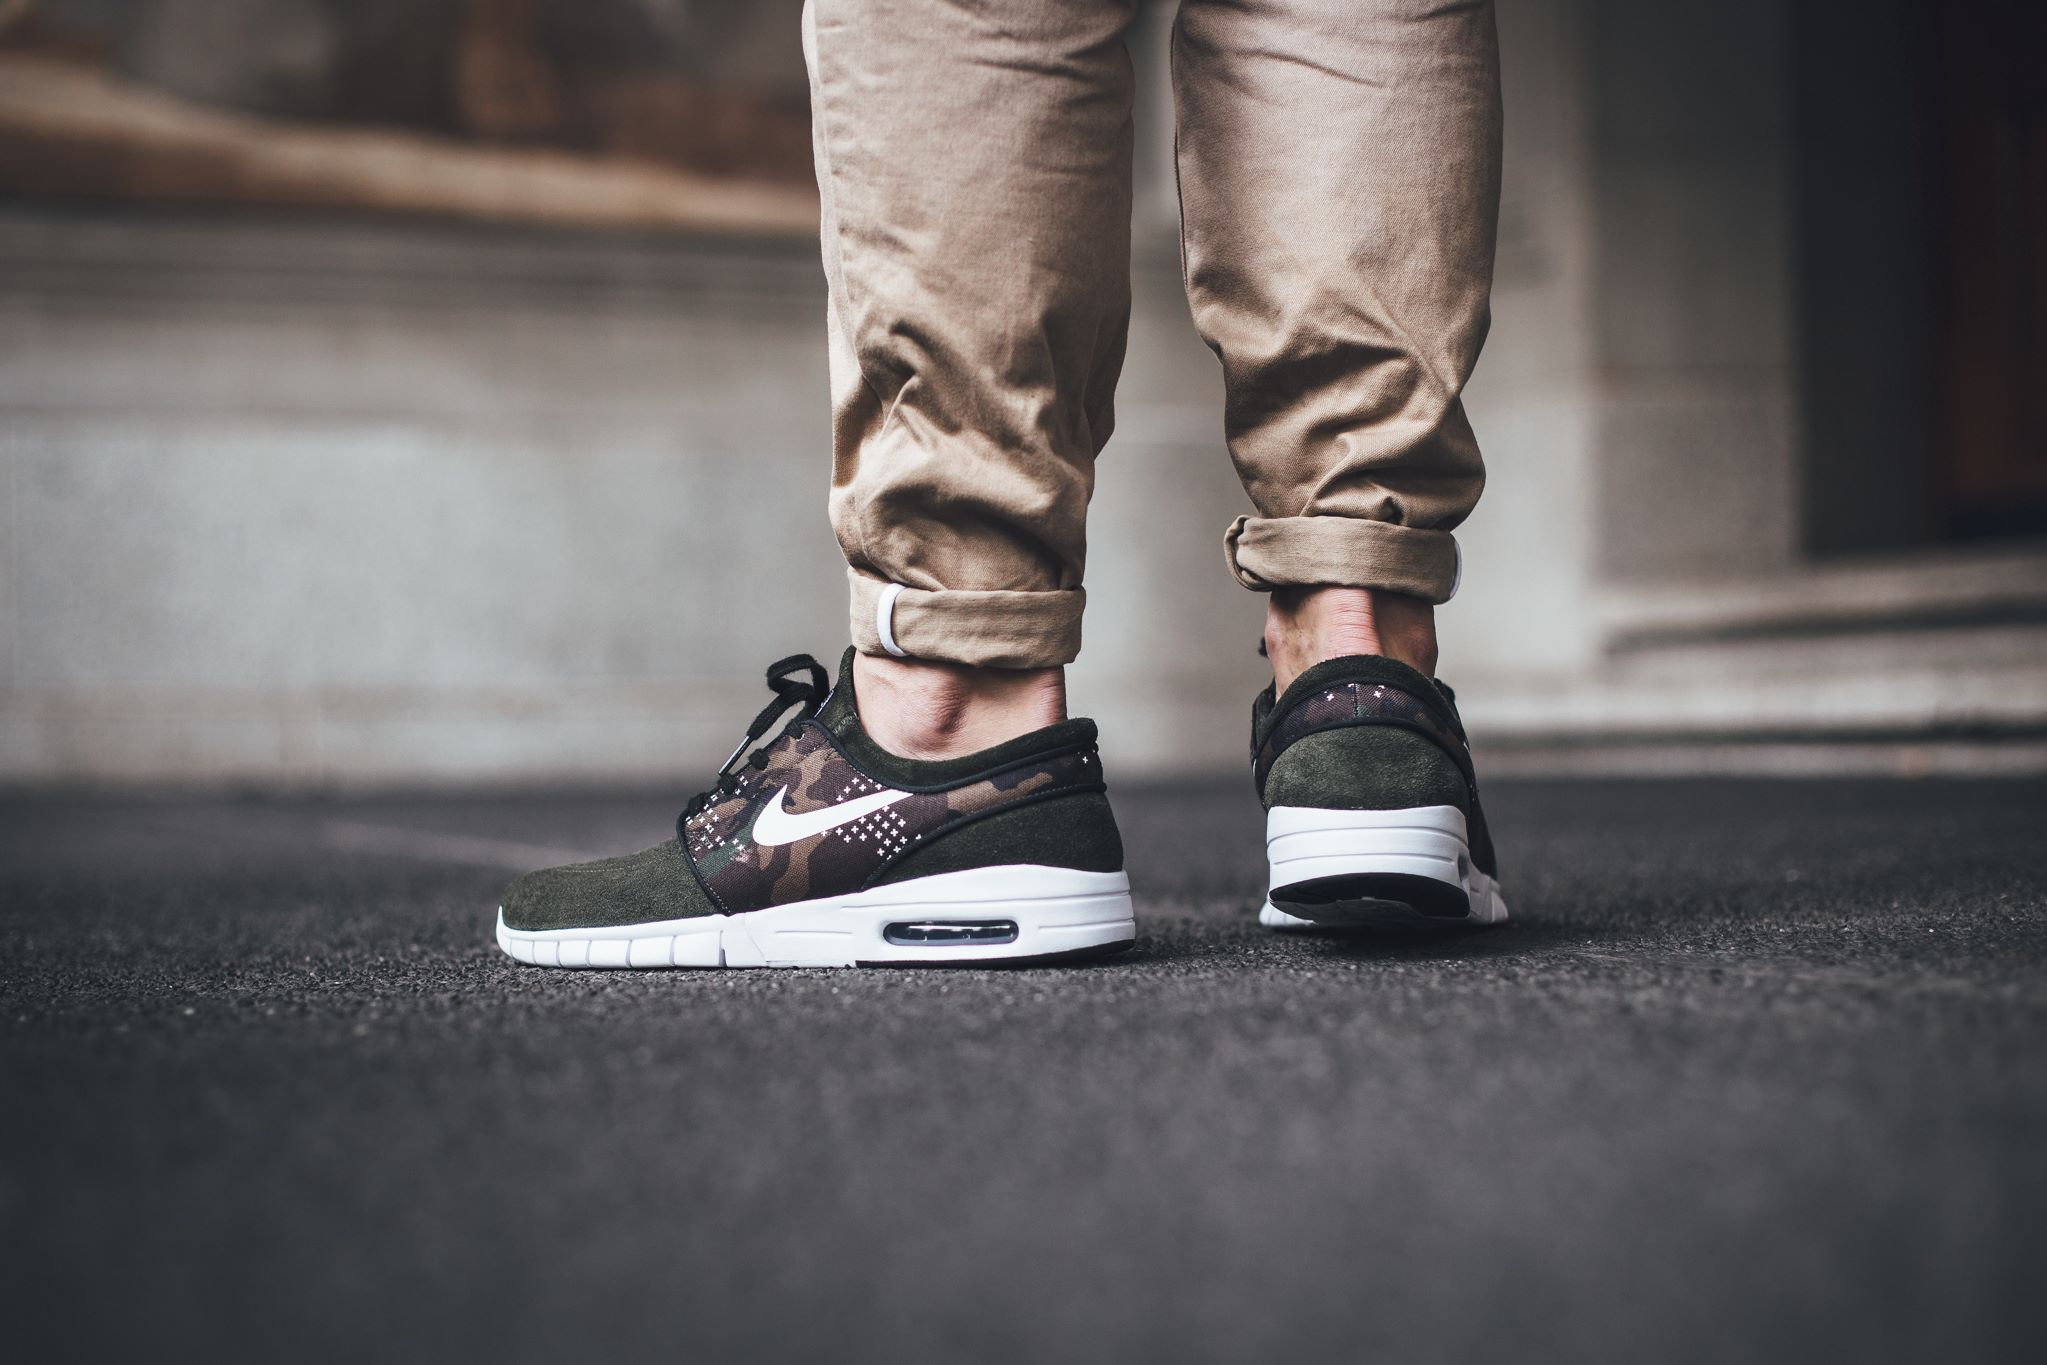 2c81d07a744e6 Camouflage Accents the New Nike SB Stefan Janoski Max. Oct 9, 2015.  Camouflage motifs have been a staple aesthetic element in menswear for the  past few ...